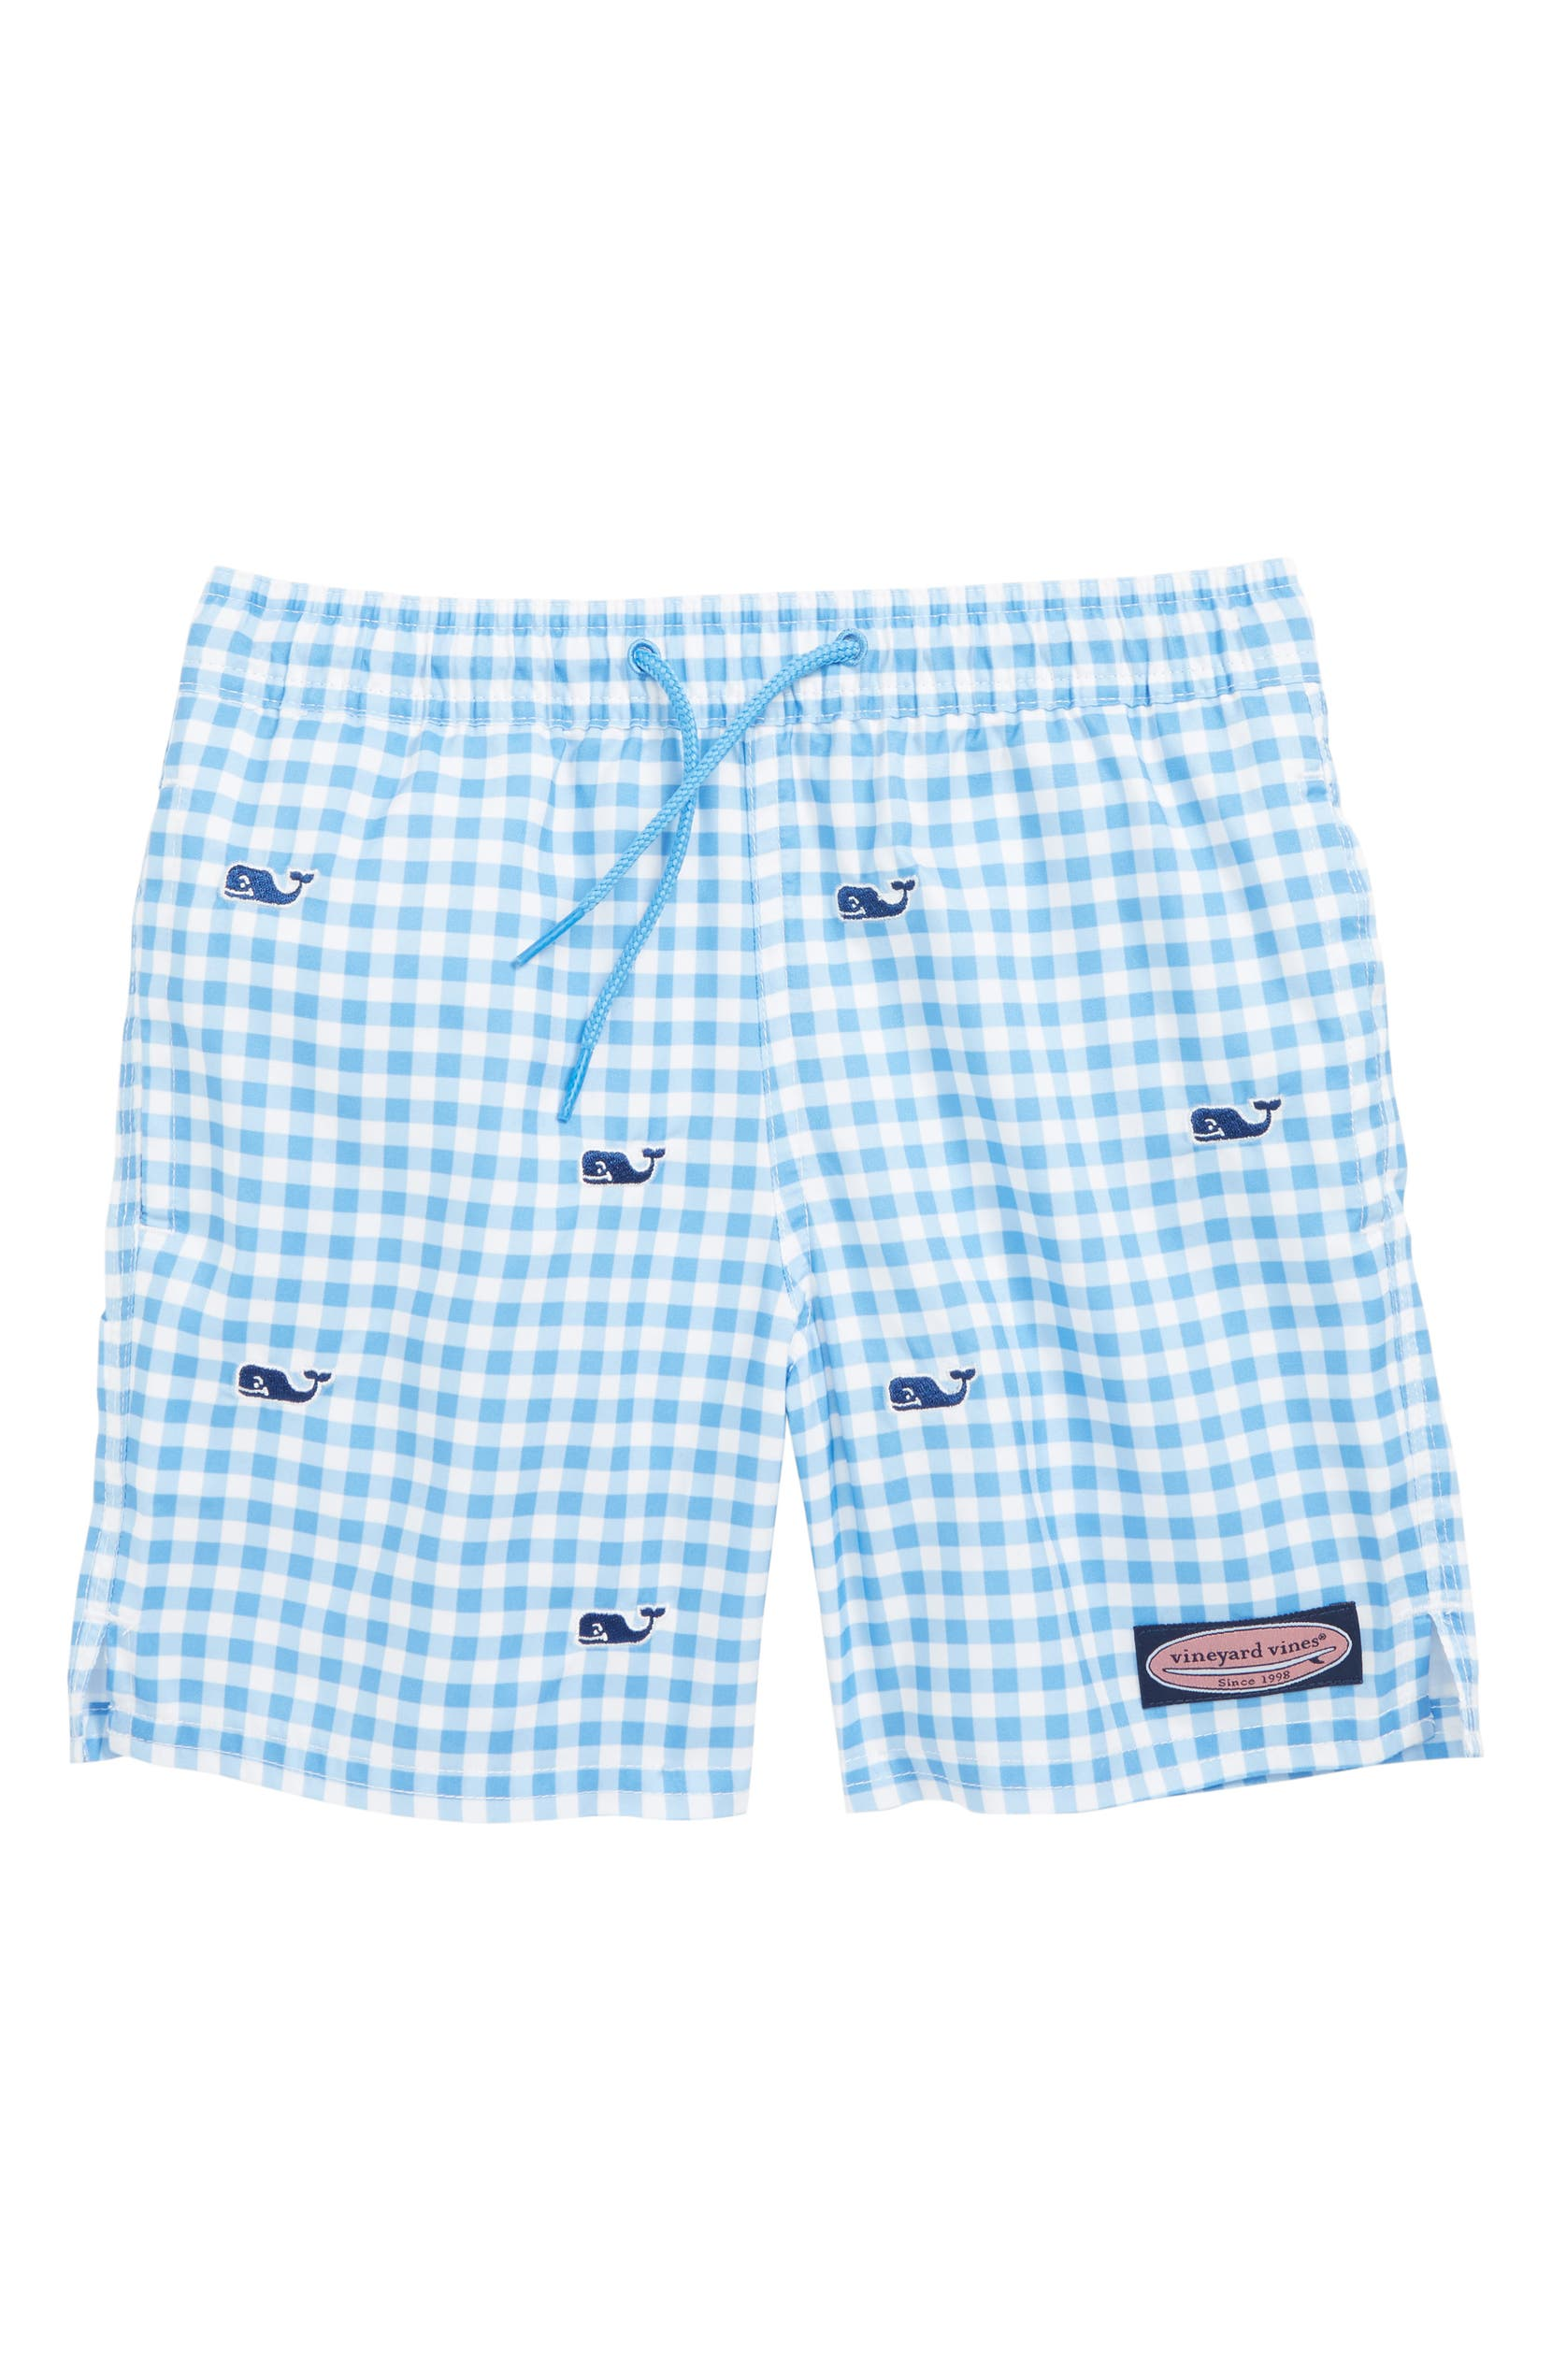 e7a63ce3ee068 vineyard vines Gingham Whale Embroidered Chappy Swim Trunks (Toddler Boys & Little  Boys) | Nordstrom